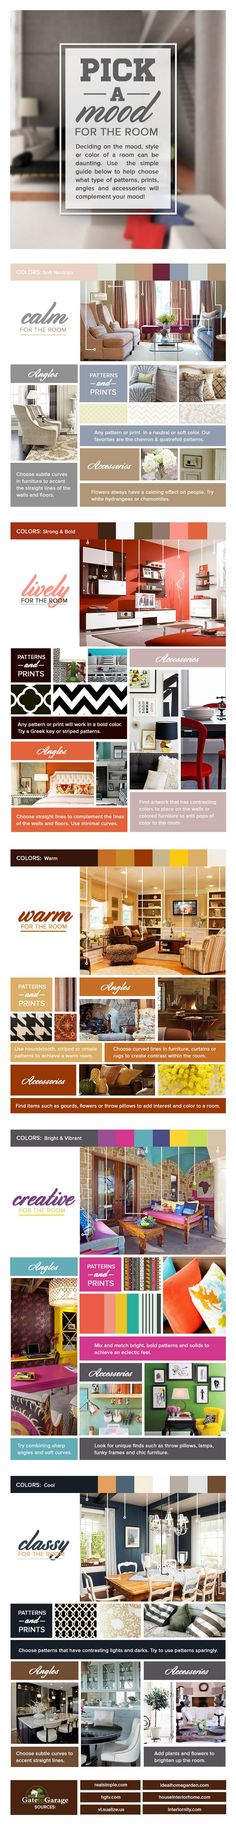 infographic How to Effortlessly Build a Certain Mood for Your Room [Infographic]